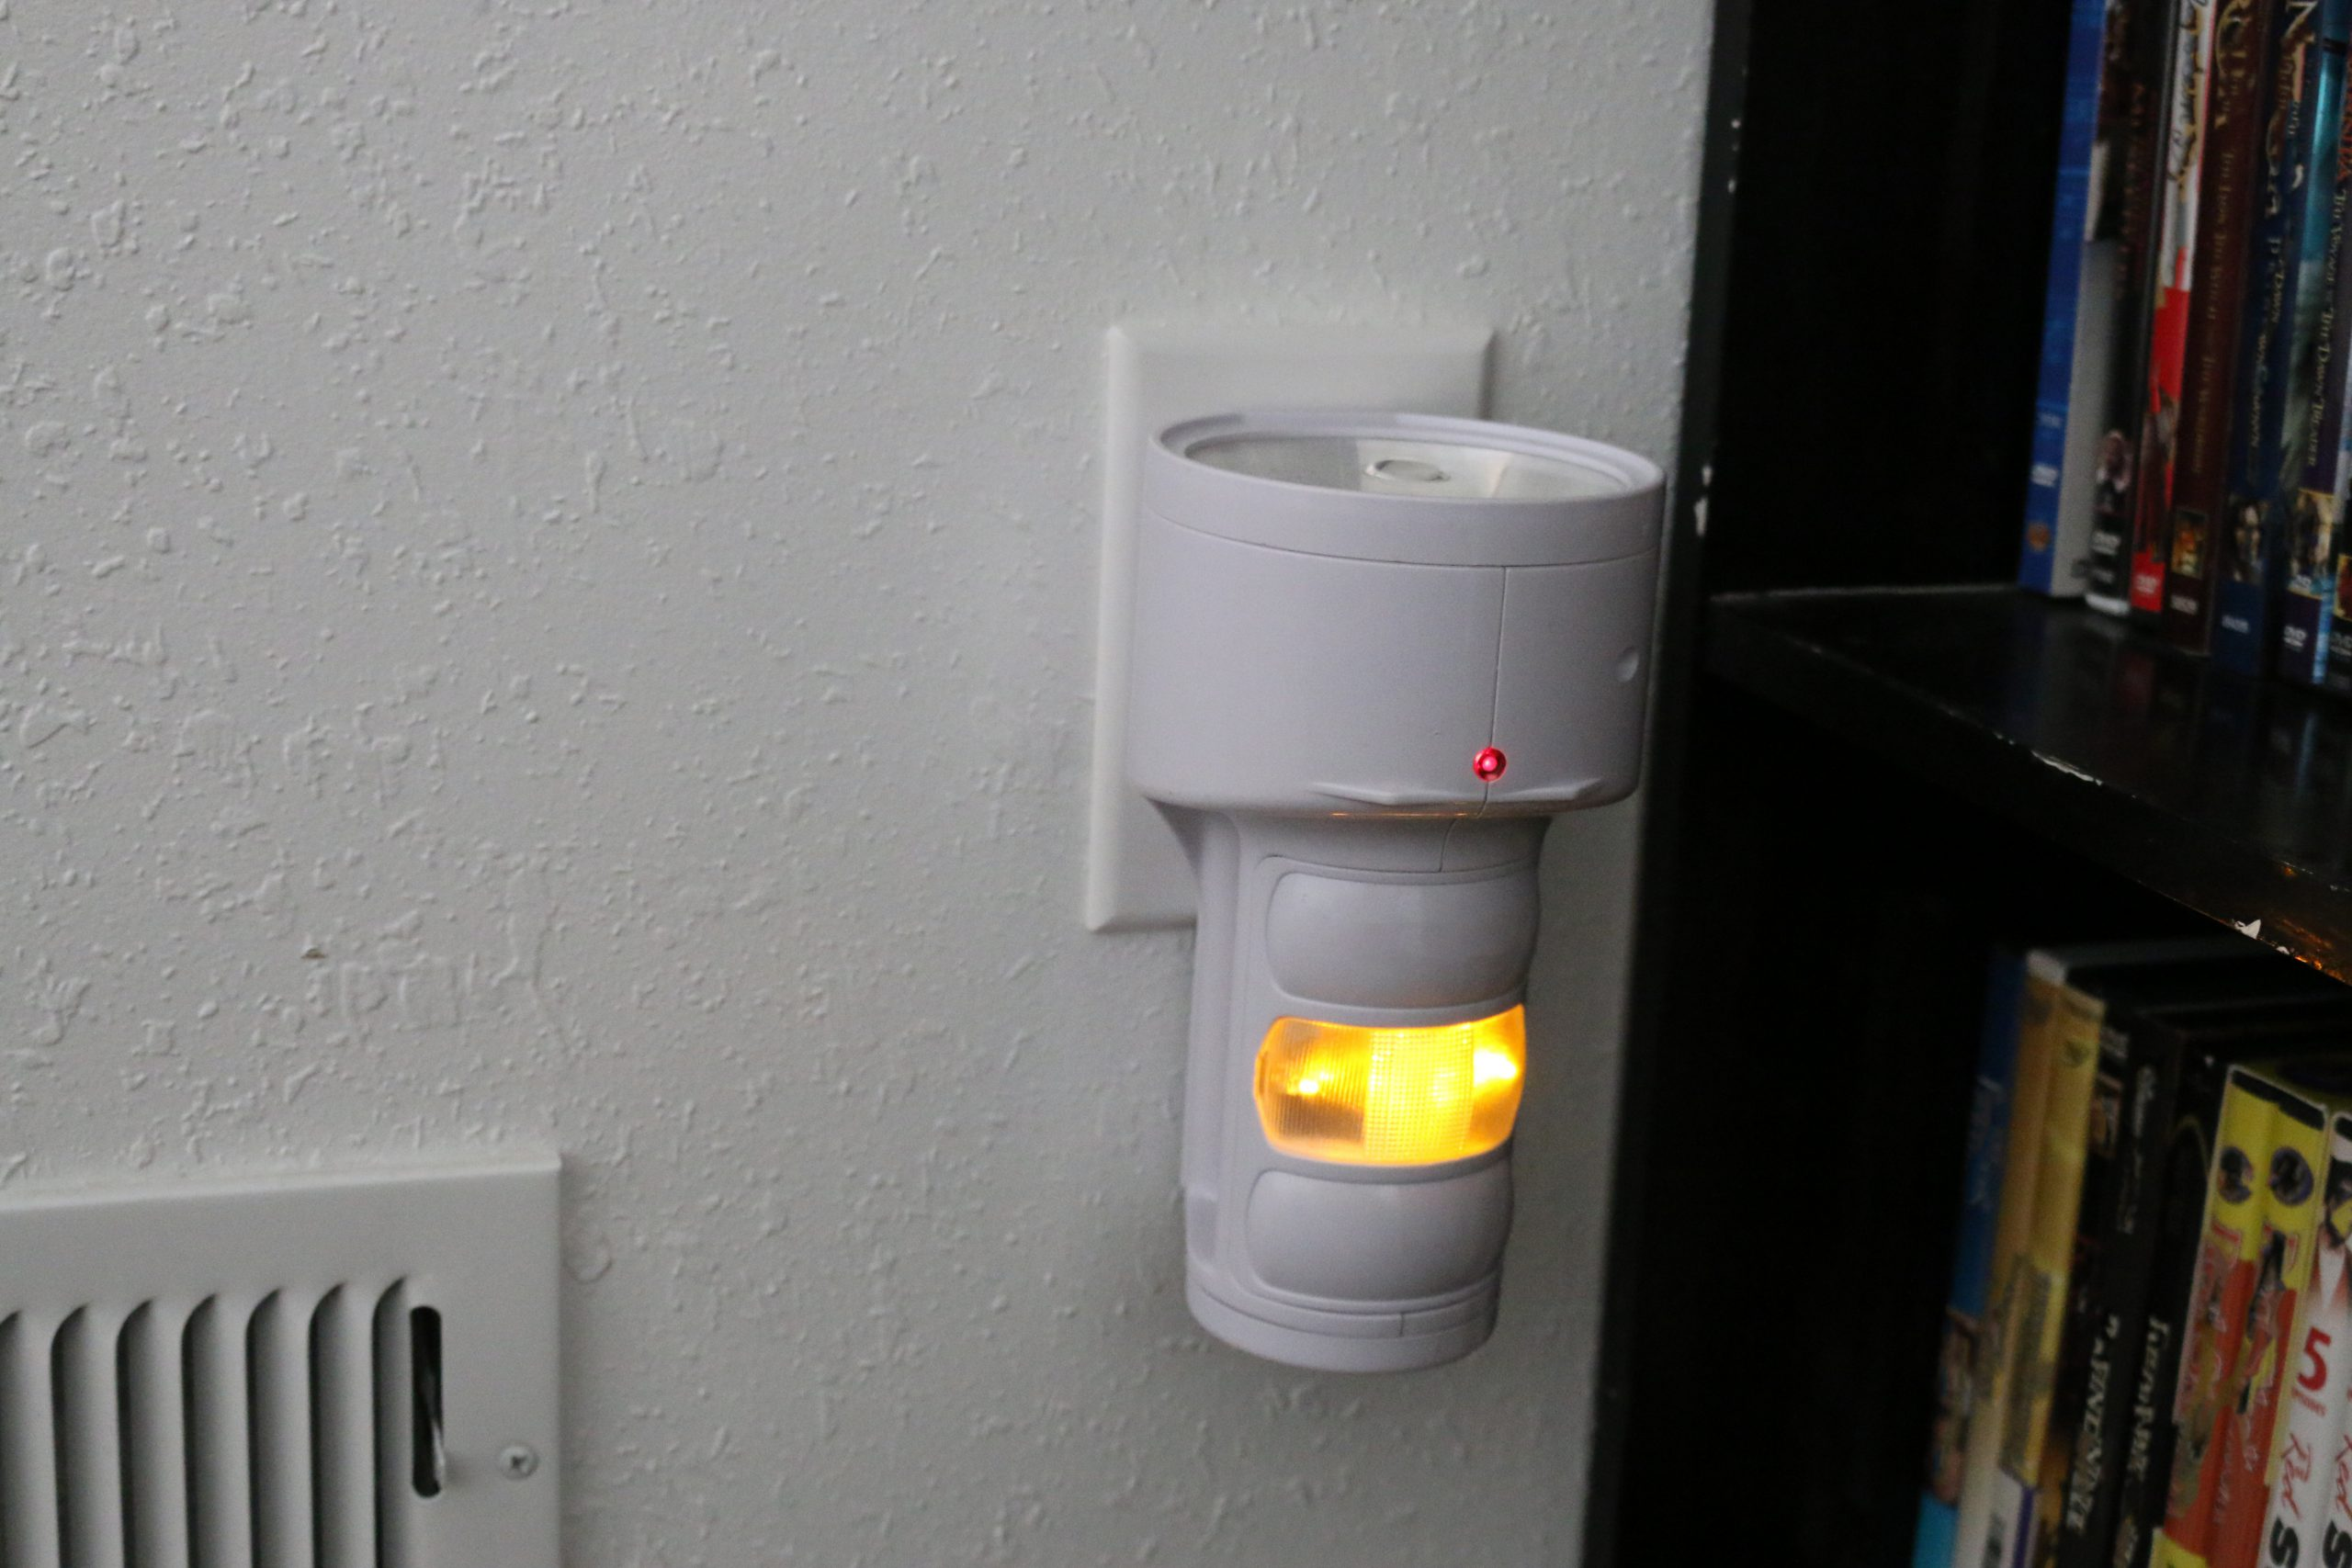 Emergency flashlight plugged into wall electrical outlet.